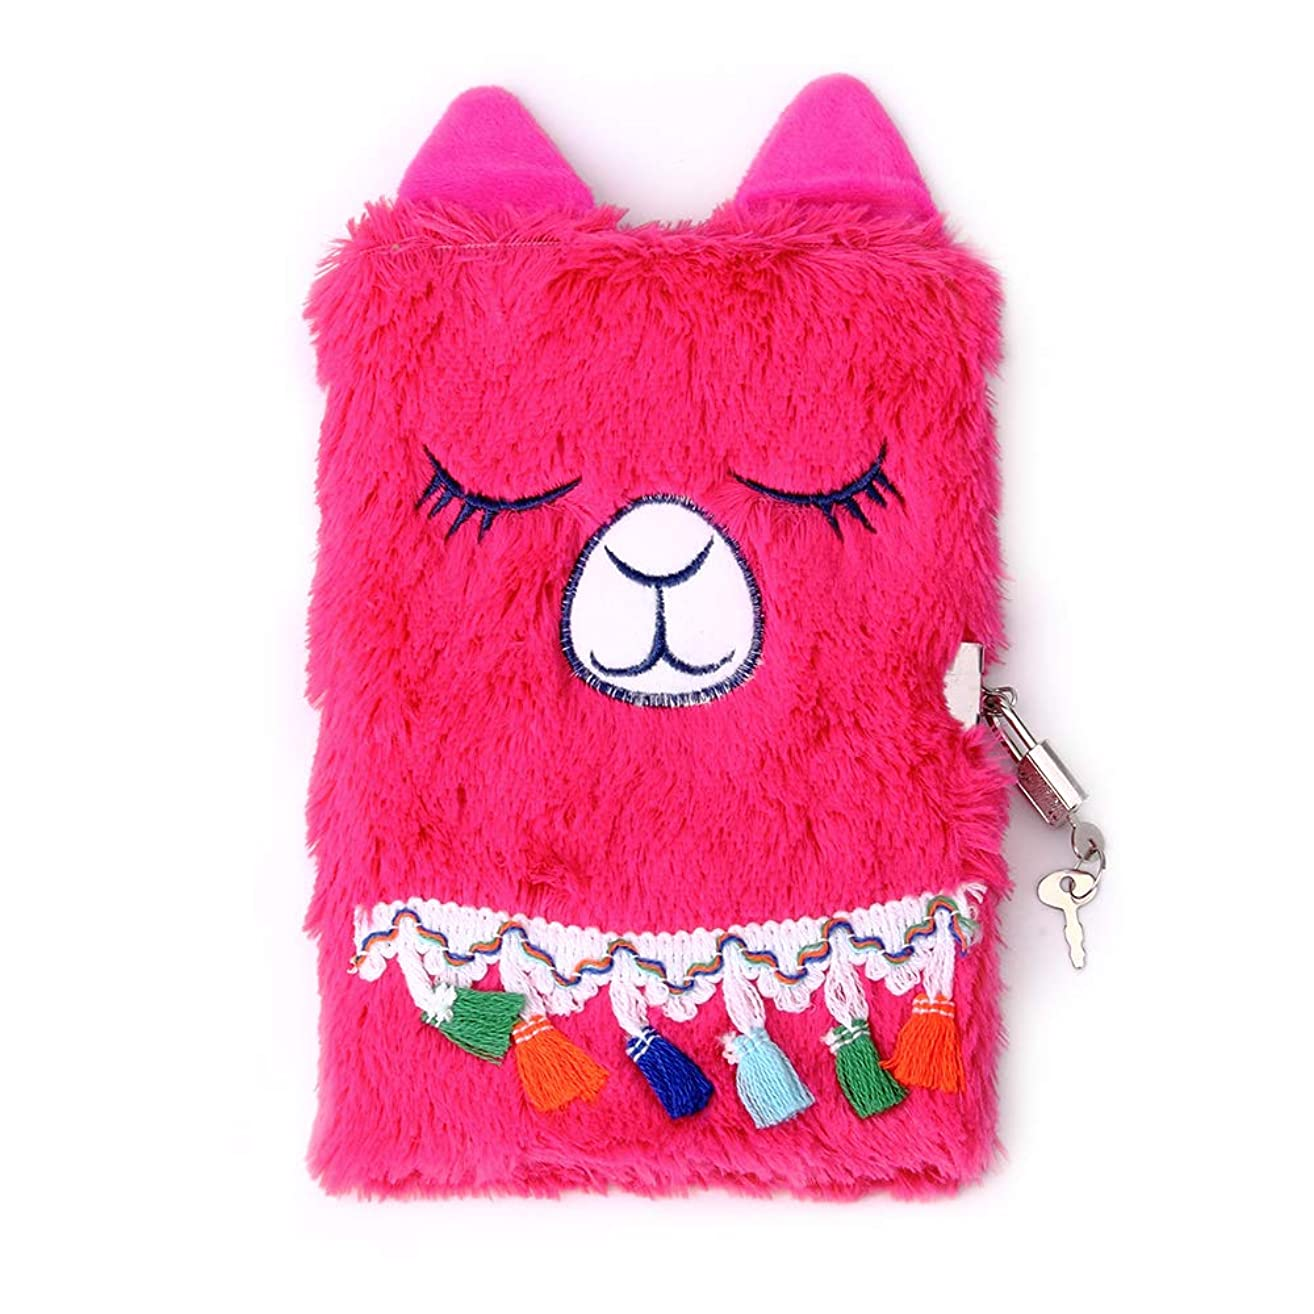 PojoTech Magical Lovely Diary with Lock for Girls (Llama)